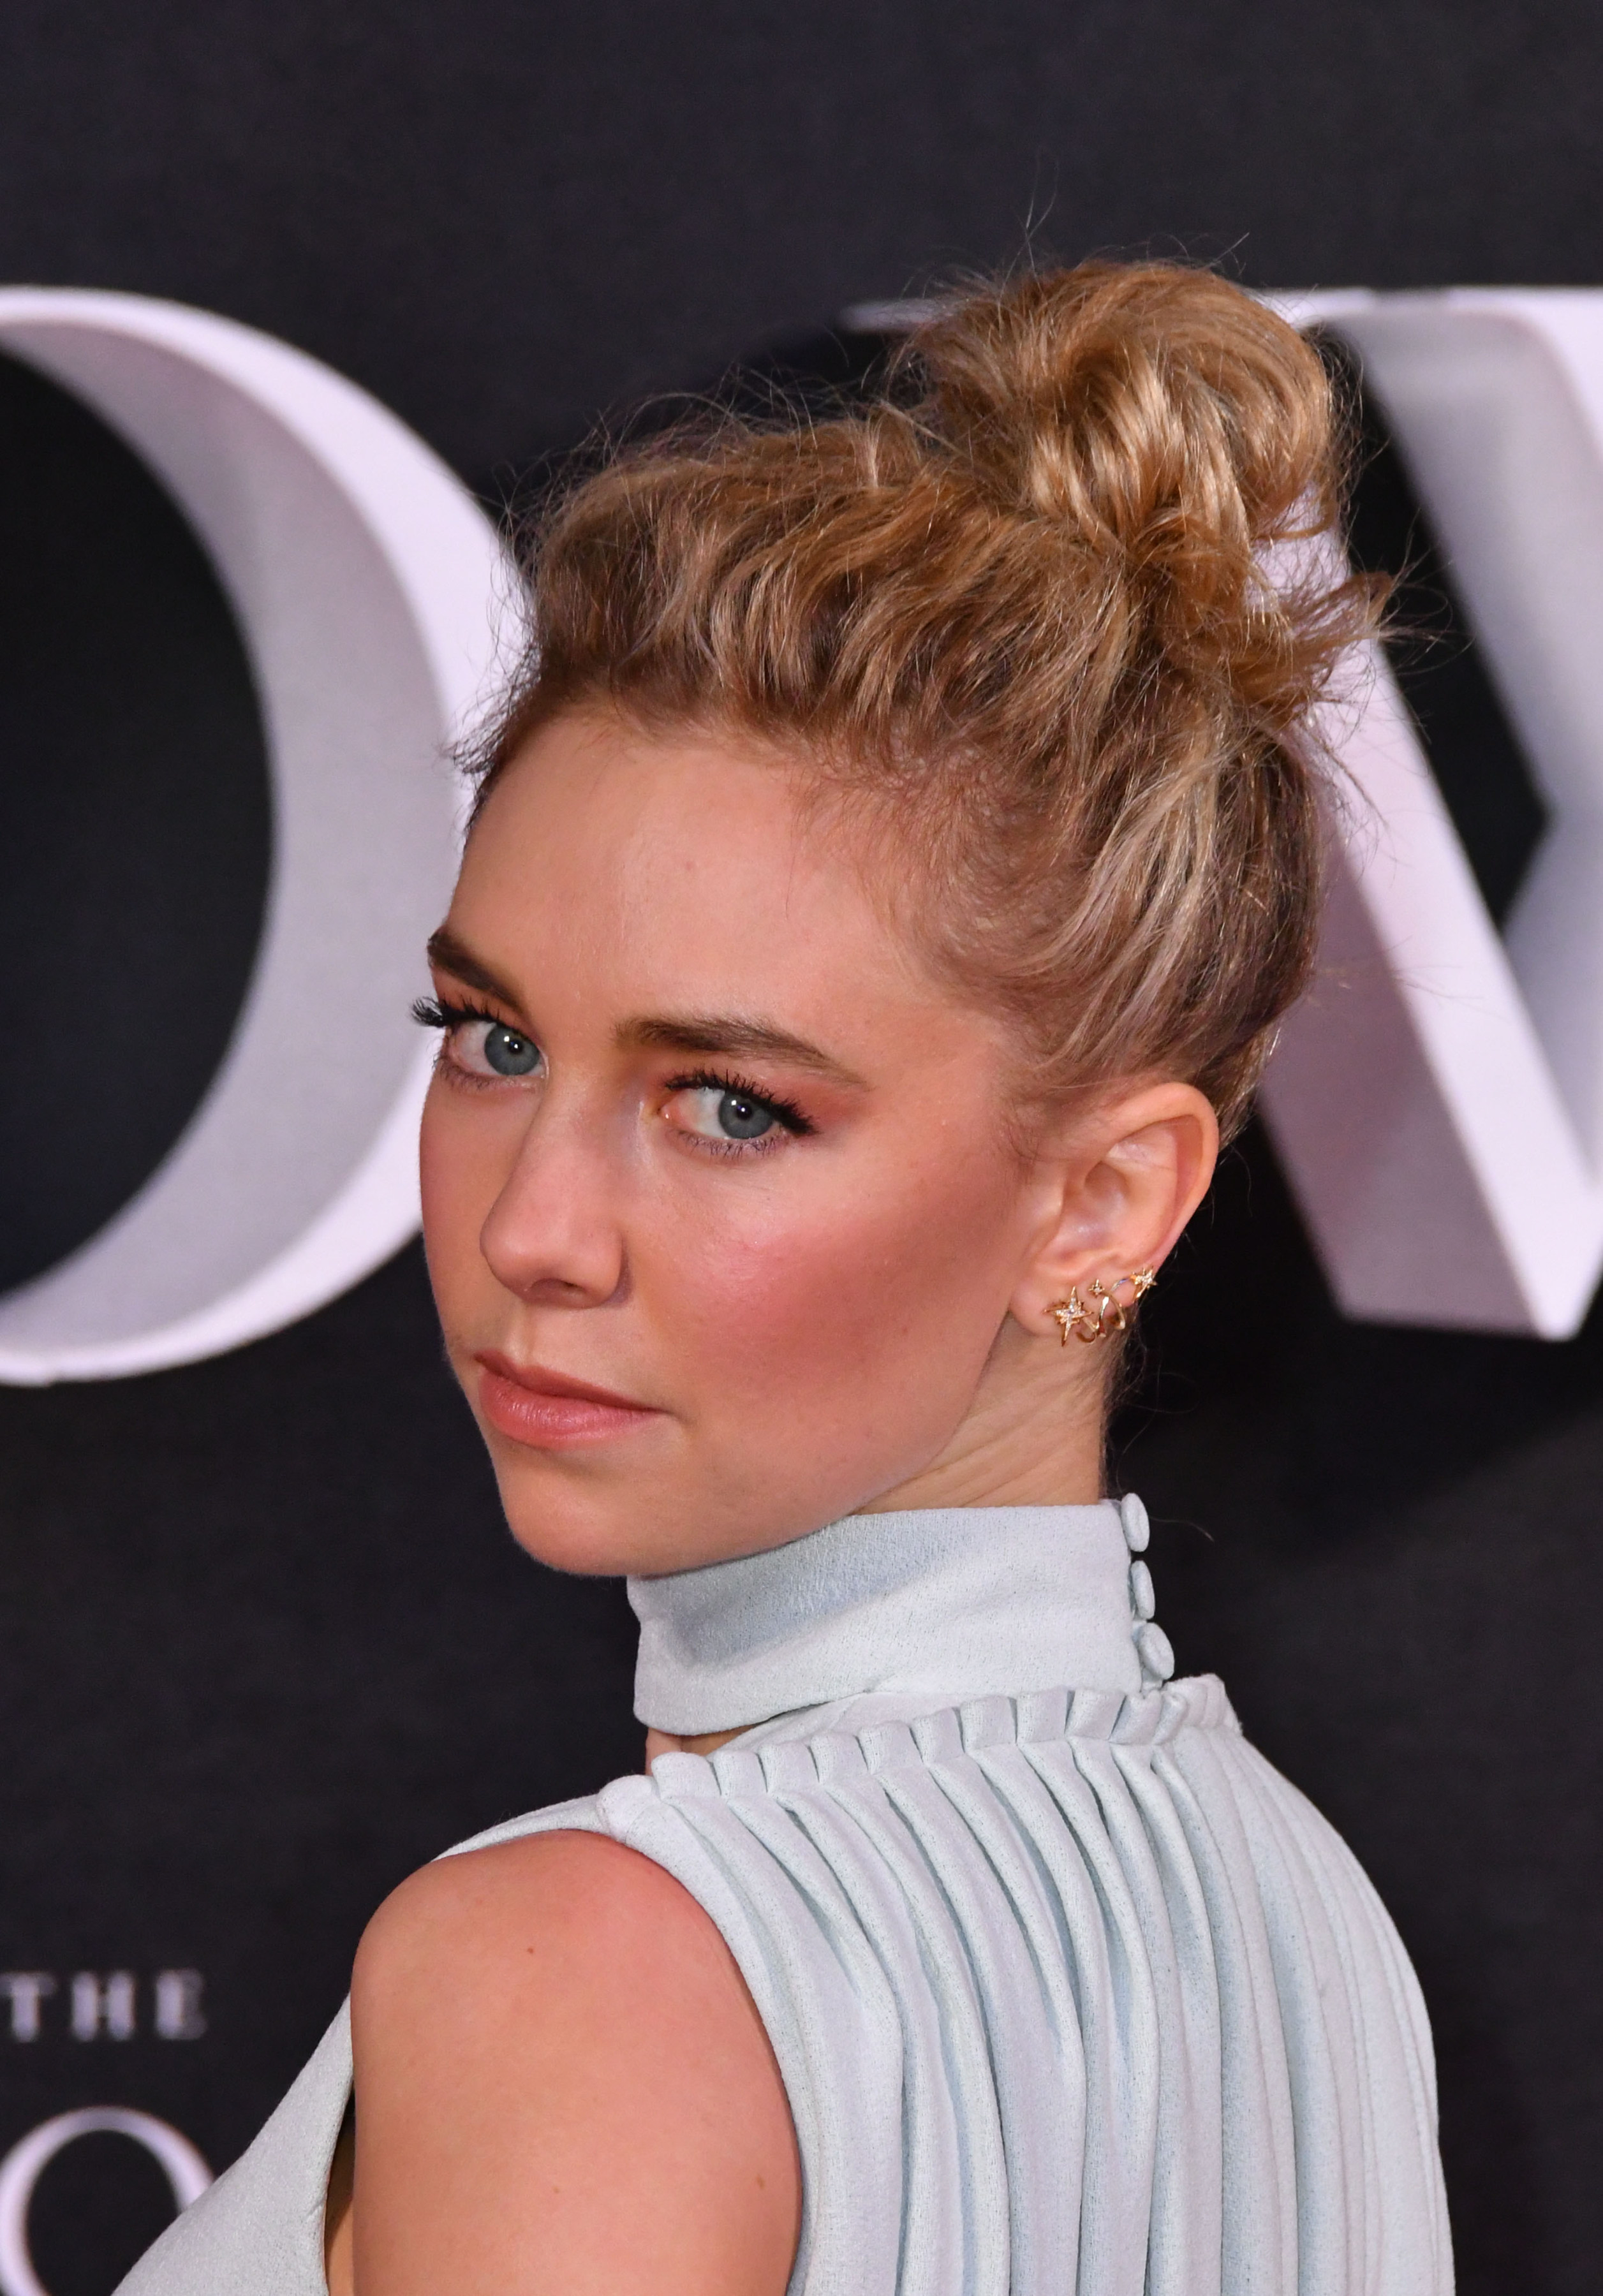 vanessa-kirby-premiere-the-crown-tv-series-london